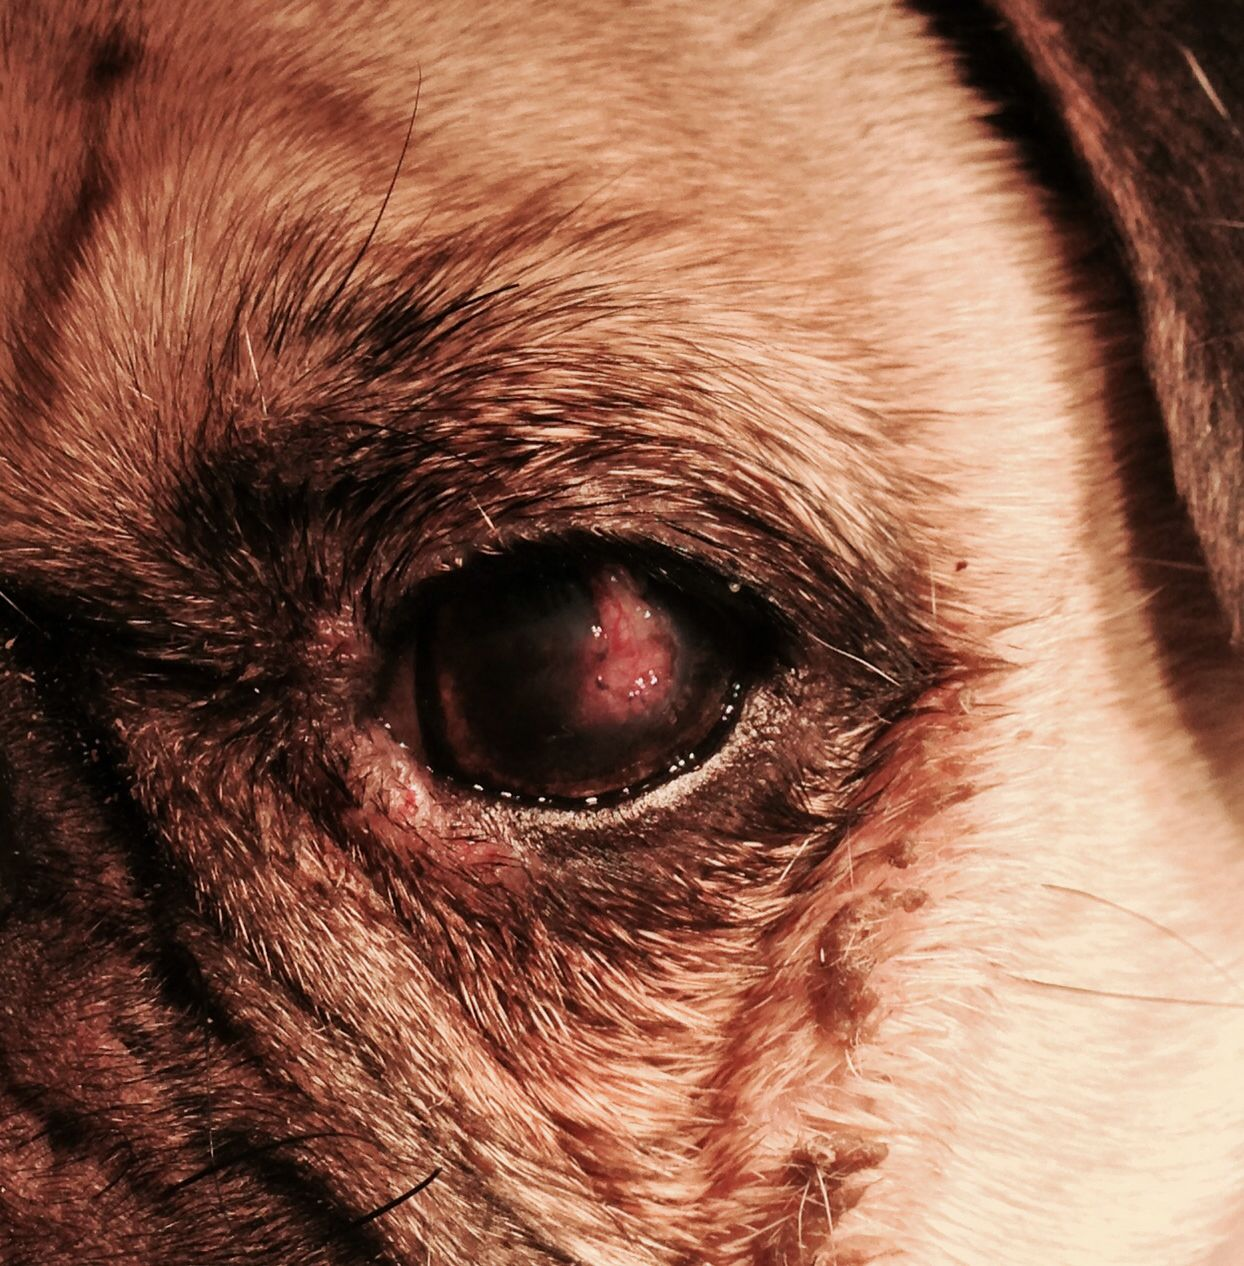 Pictures Of Ulcers In Dogs Eyes